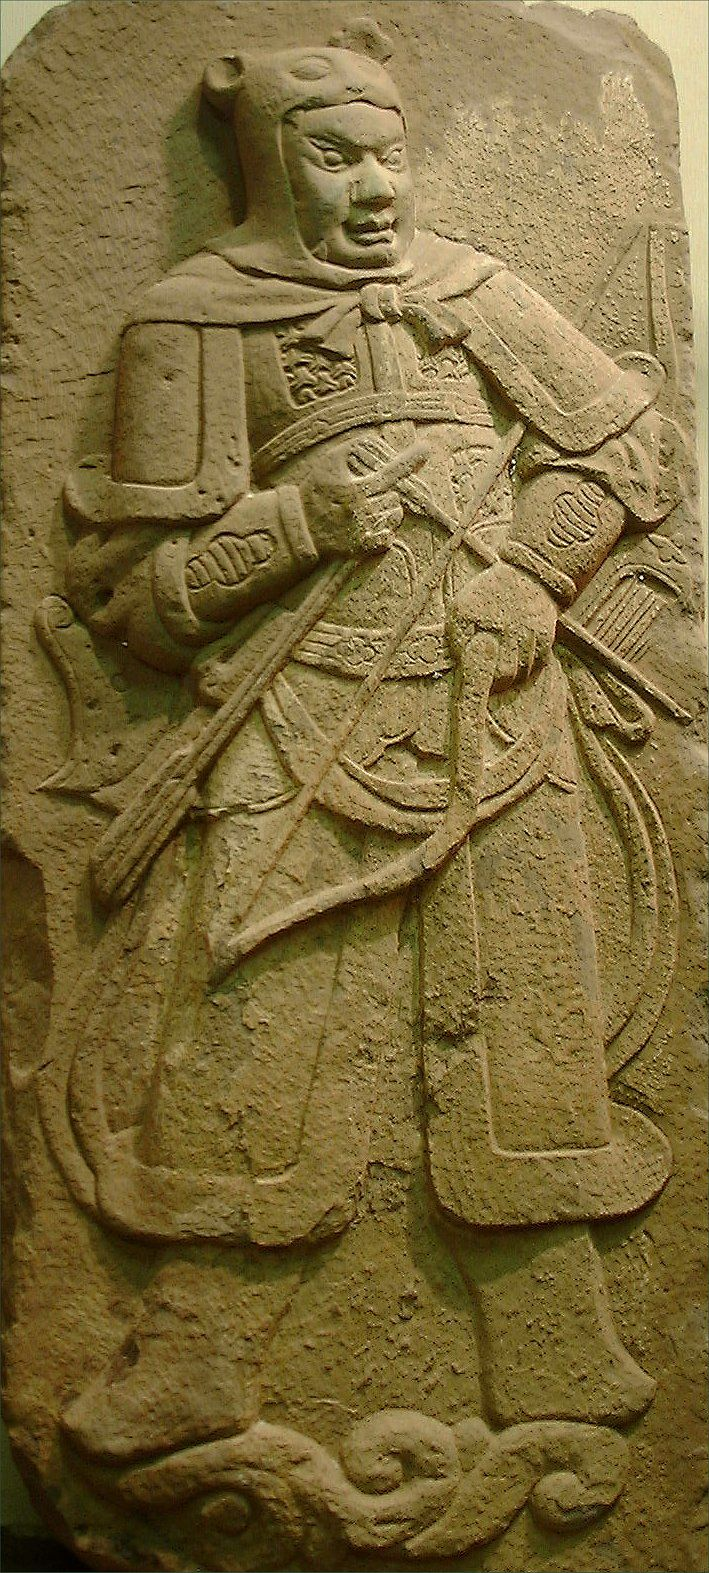 Another stone carving from a contemporary Five Dynasties Ten Kingdoms period tomb.: Art Chinese, Art Stuff, 907 1125 907 960, Dynasty 907 1125, Dynasties Ten Kingdoms, Asiatic Peoples, Ancient China